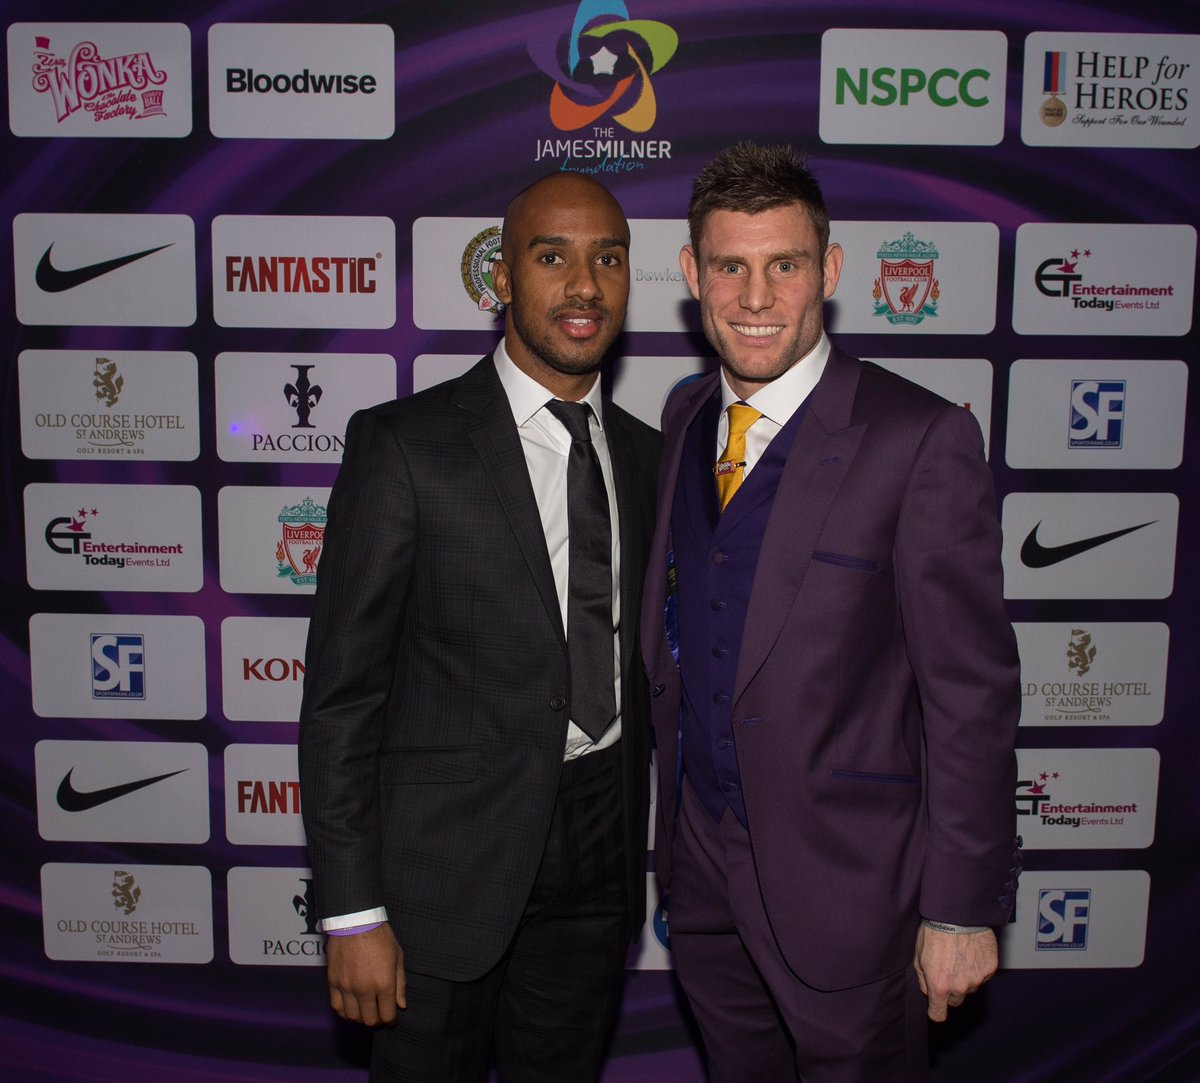 We would also like to say a special thanks to Fabian Delph for a special act of generosity